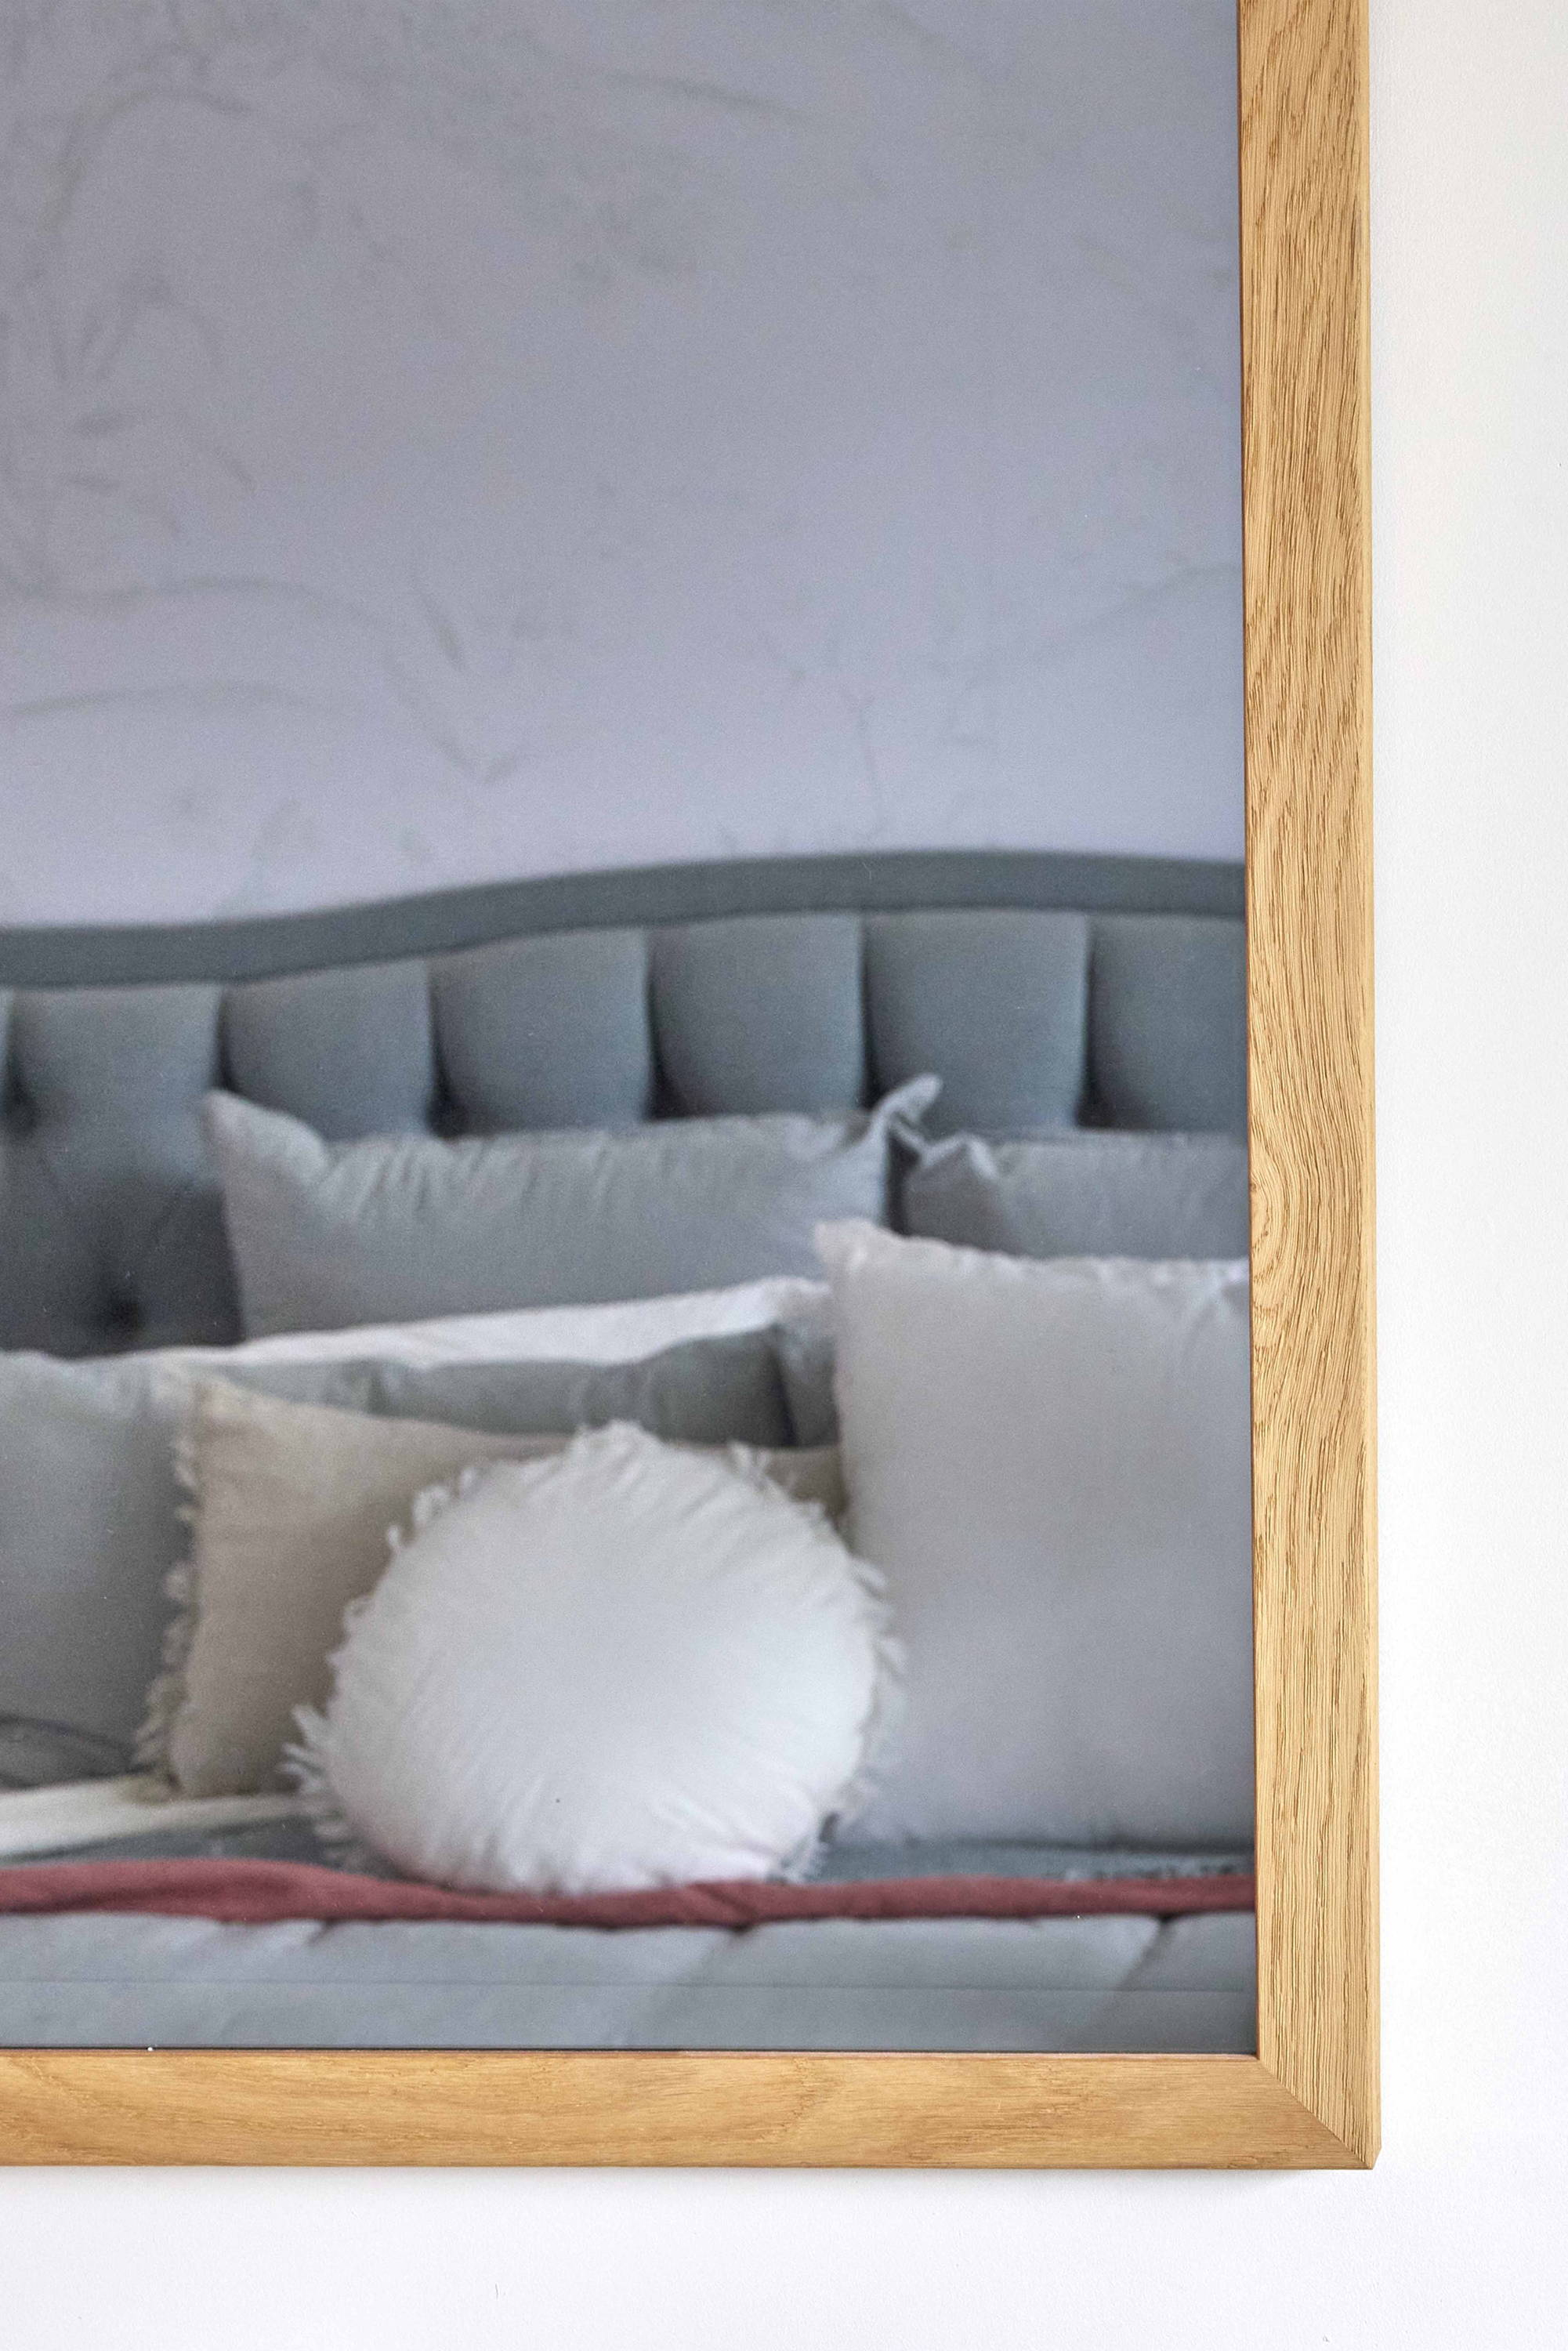 TV-Mirror Modern Rustic Oak Frame by FRAMING TO A T - A TV-Mirror with an oak frame in a light, fresh bedroom.